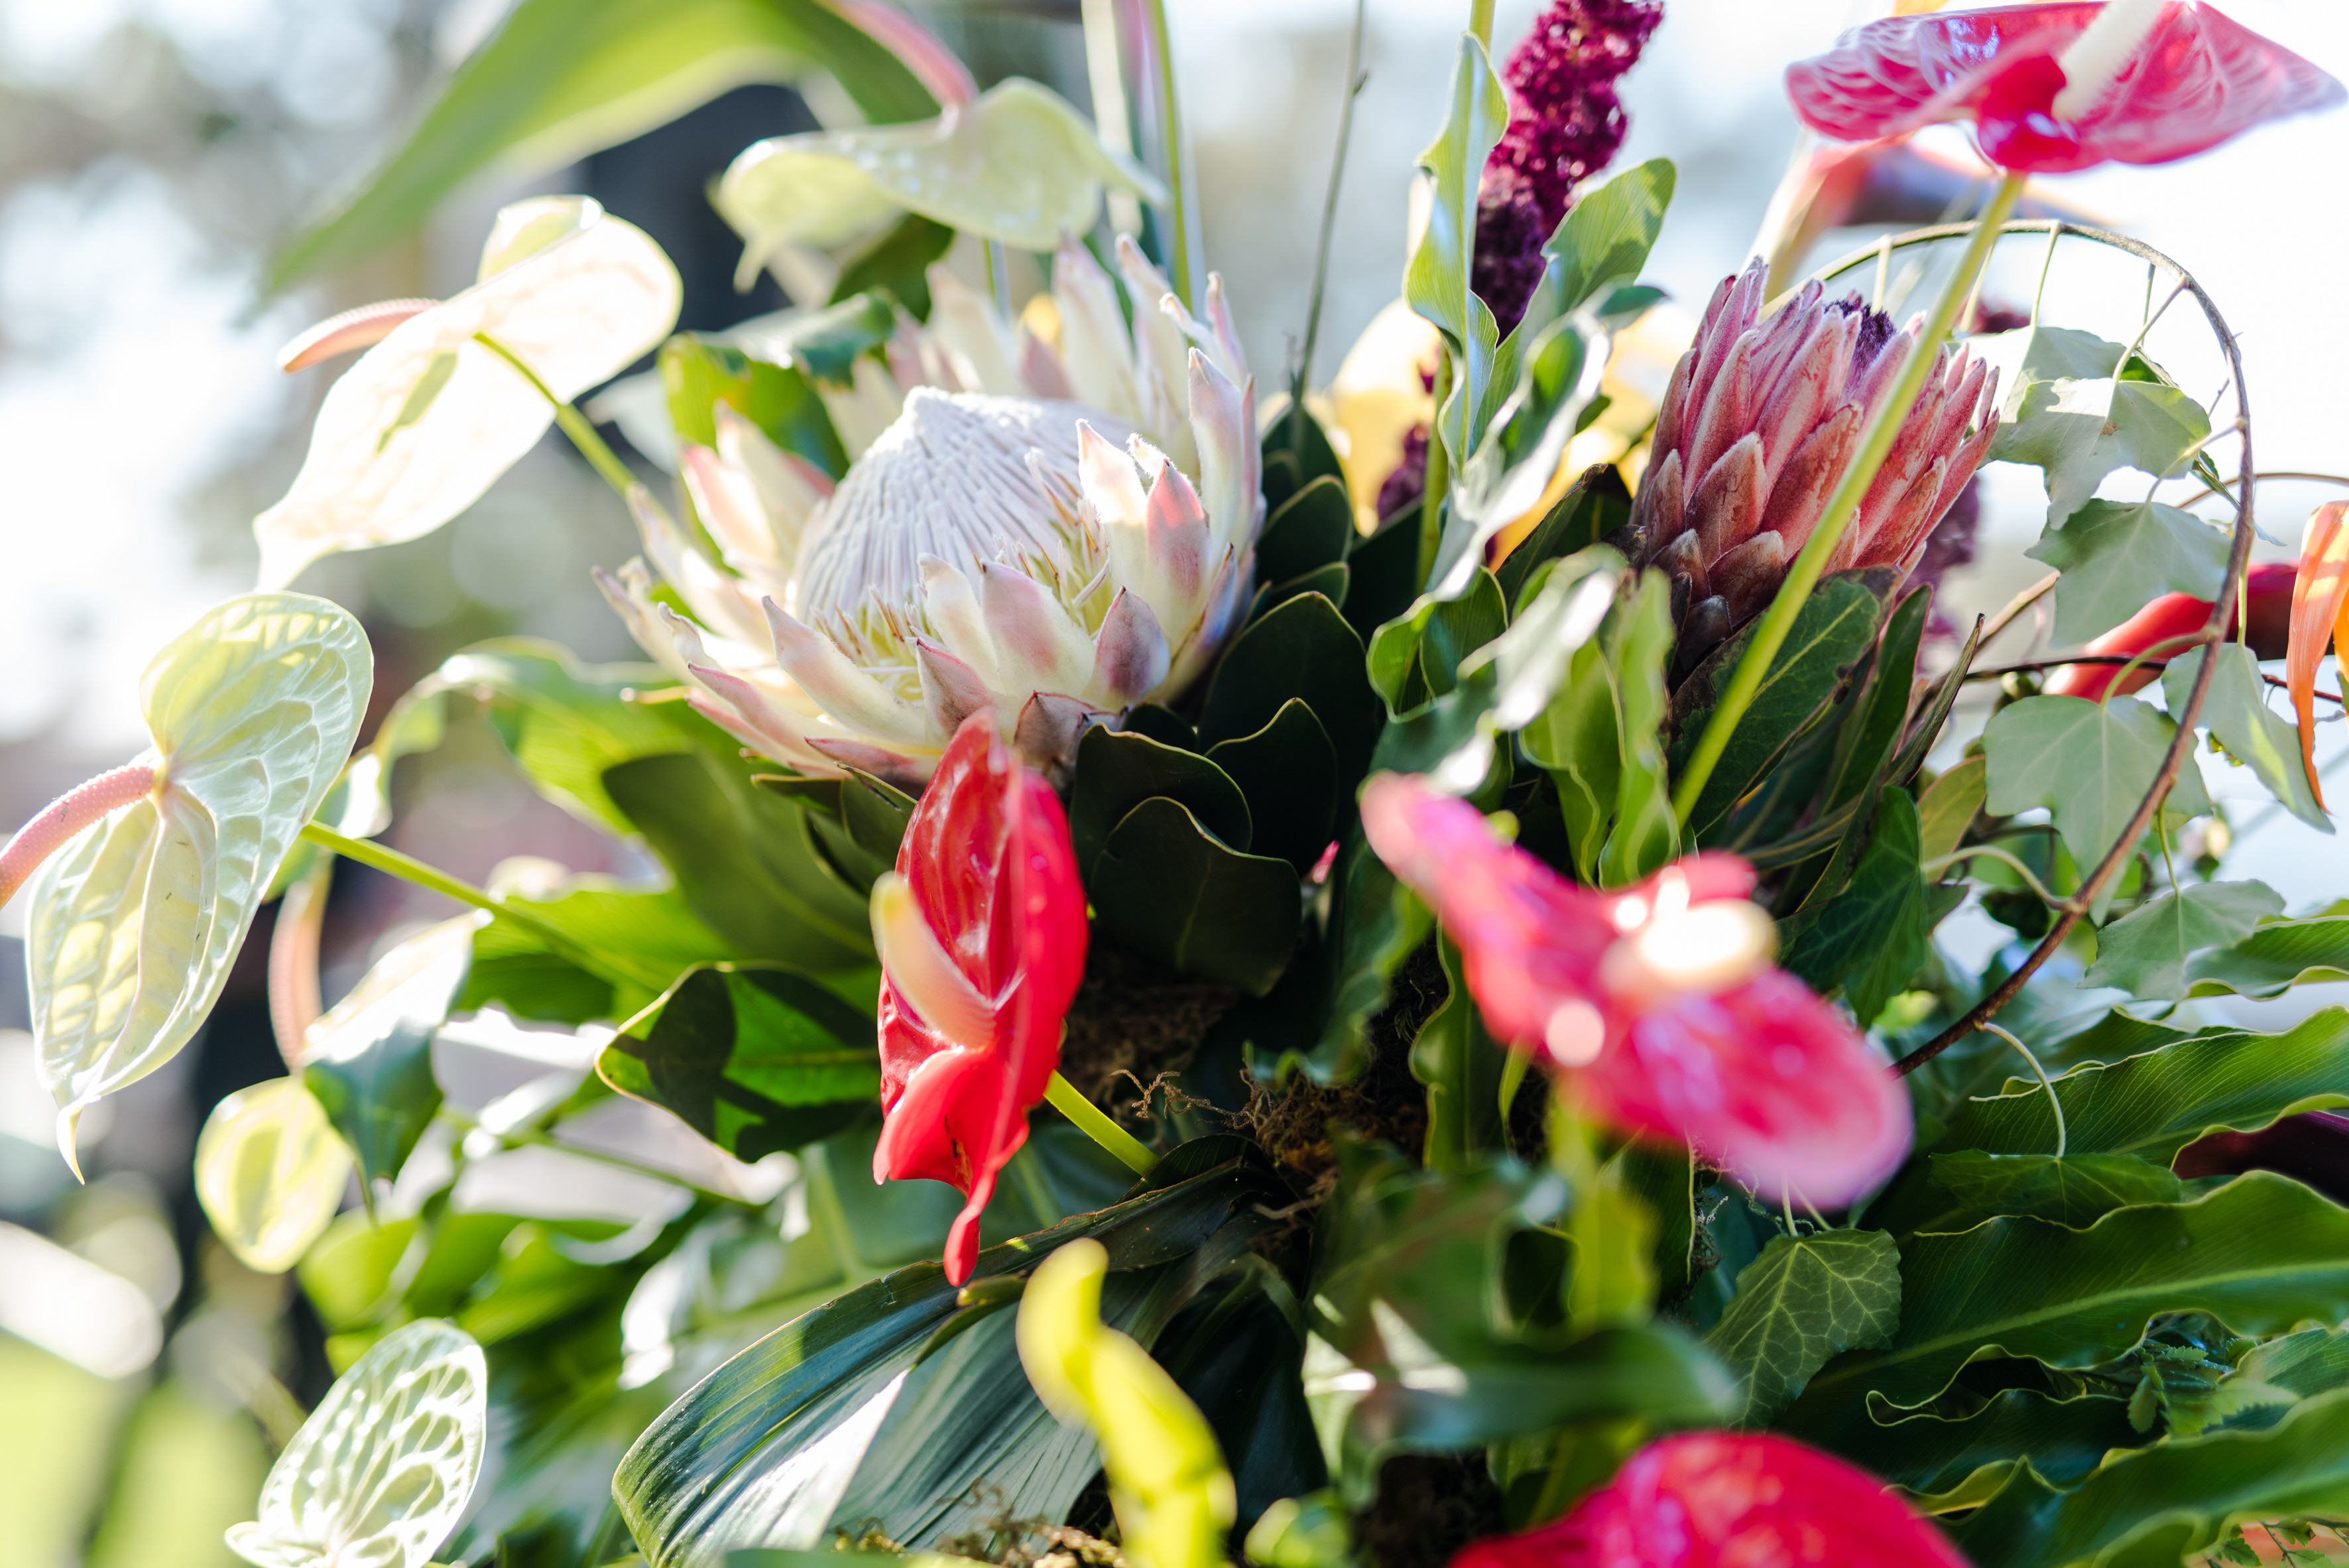 Flower Bouquet at the Carnival